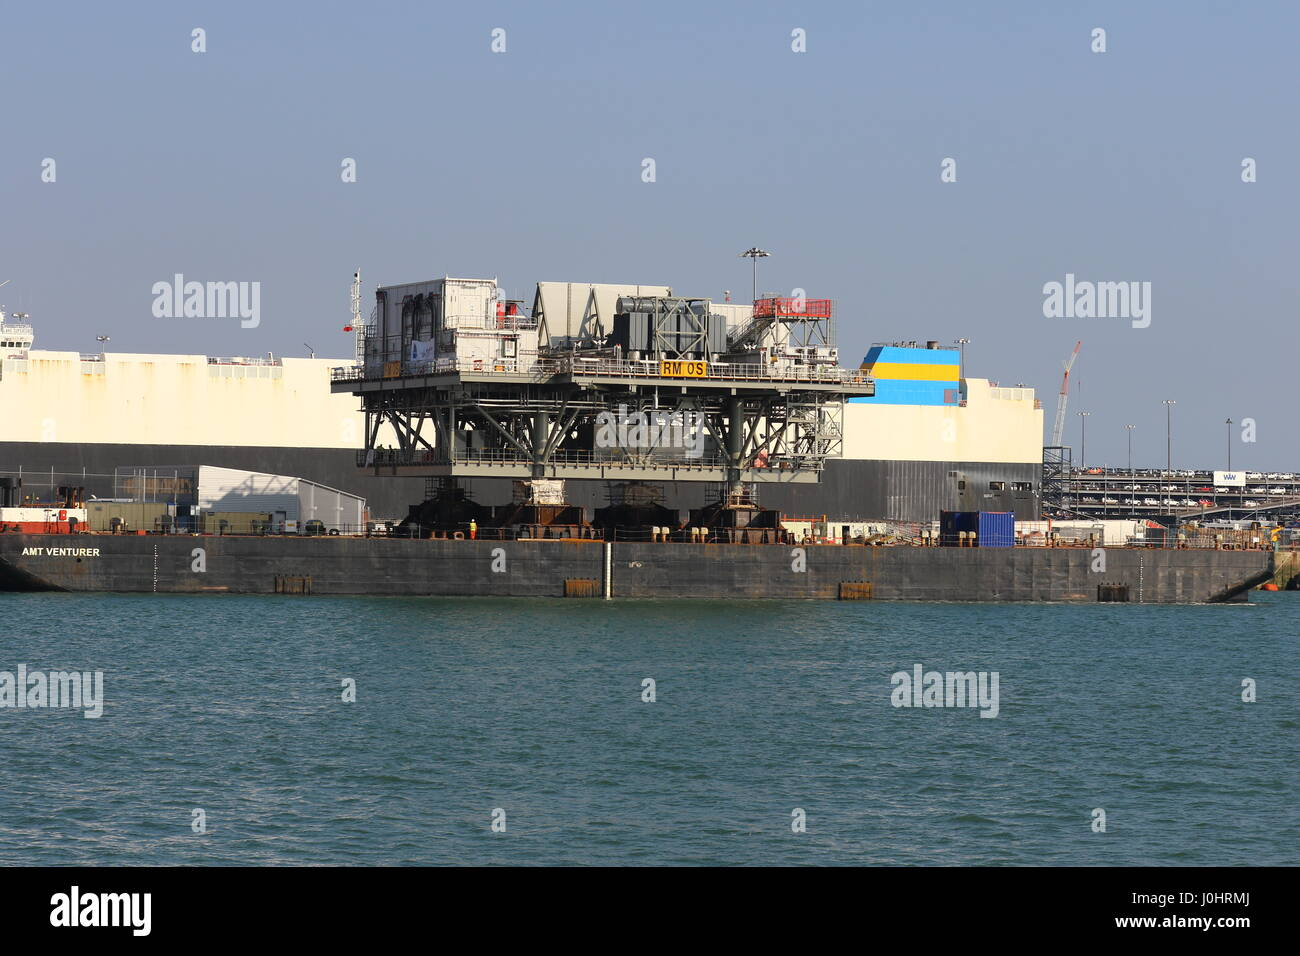 A Rampion Offshore Wind Farm platform sits in Southampton port aboard the AMT Venturer Barge - Stock Image